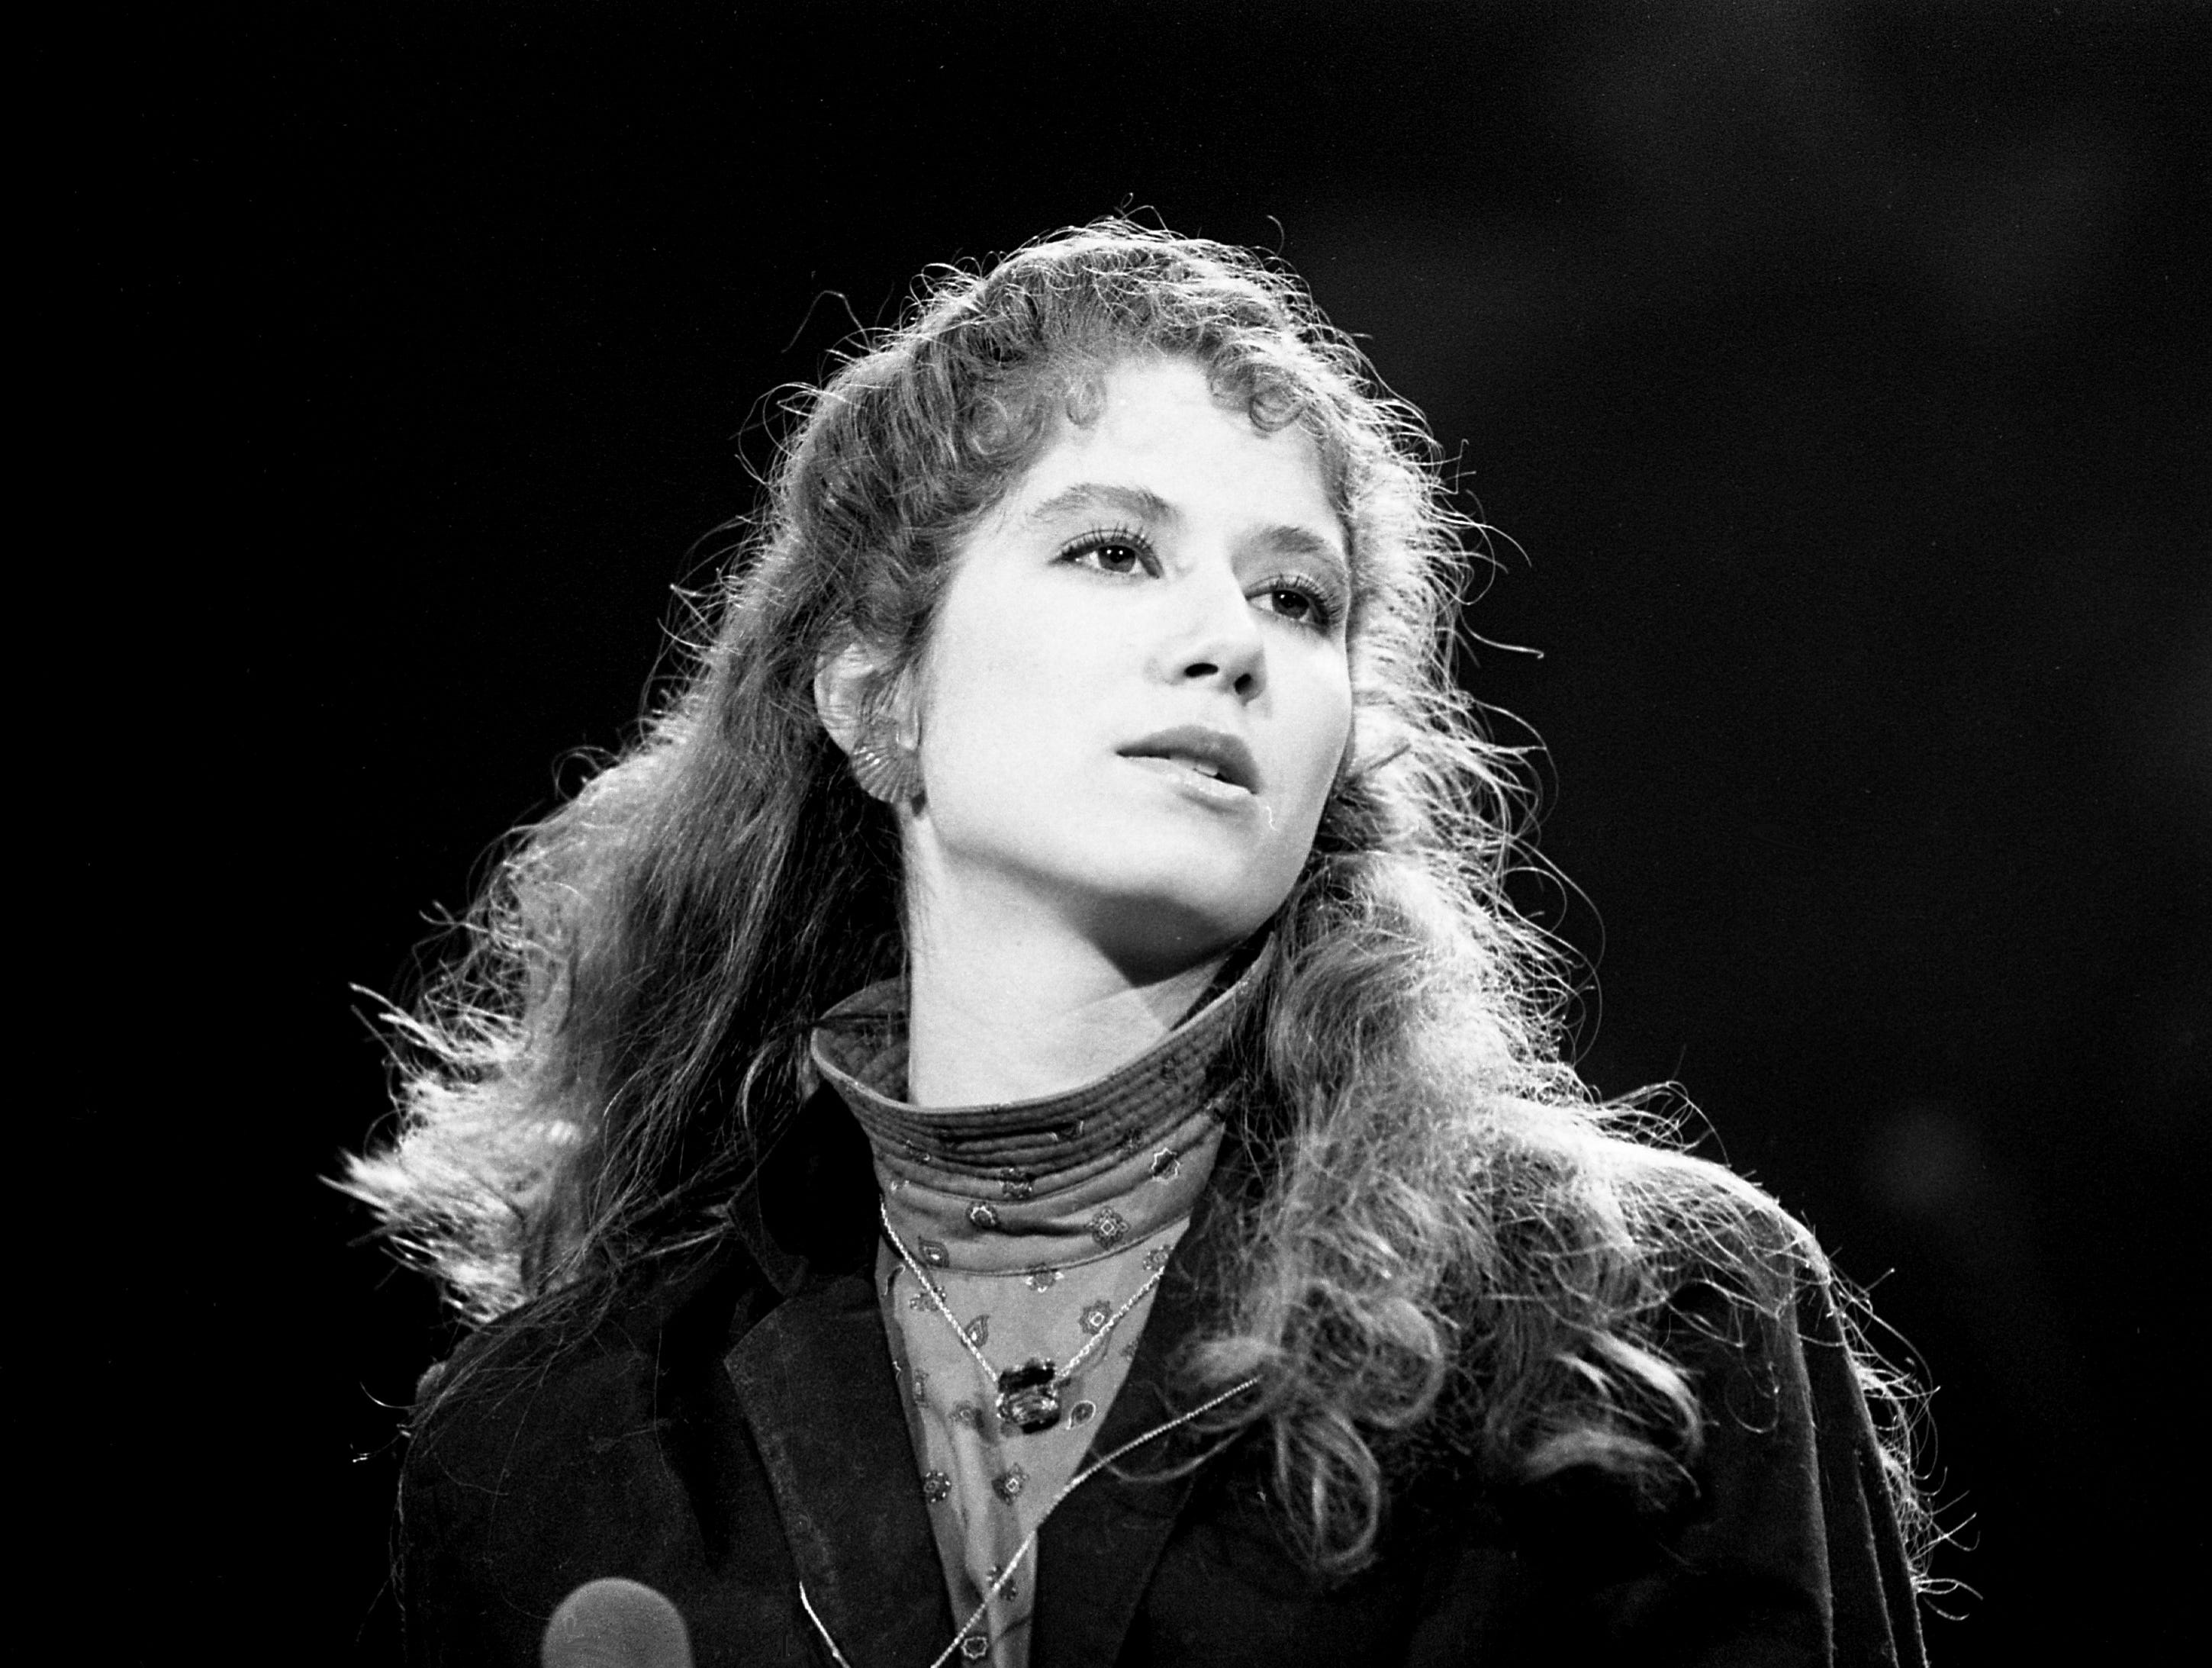 Amy Grant performs at the Municipal Auditorium in Nashville on Feb. 4, 1984.